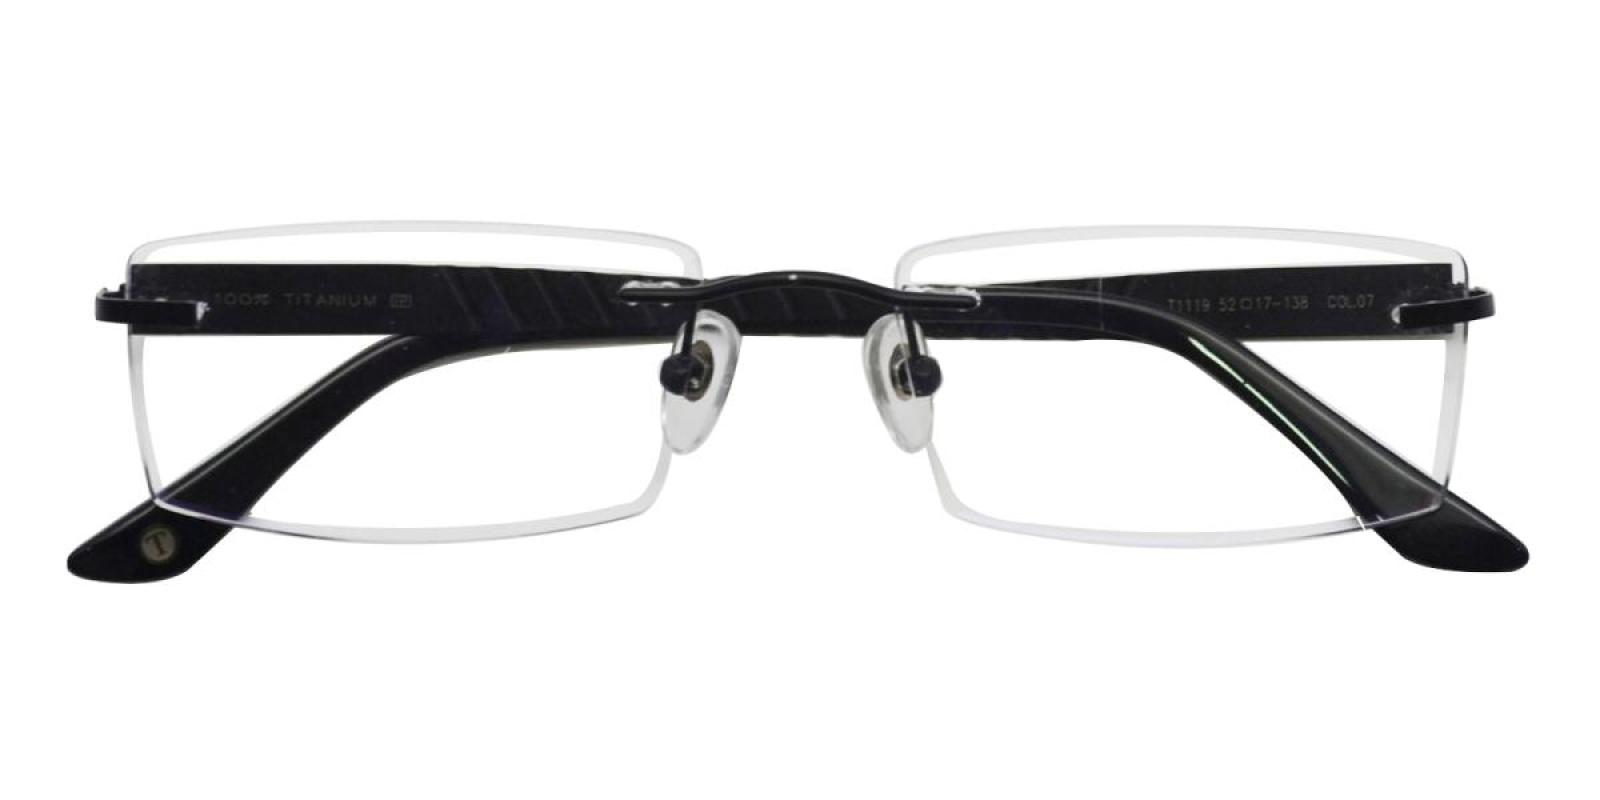 Blaymond-Black-Varieties-Titanium-Eyeglasses-detail